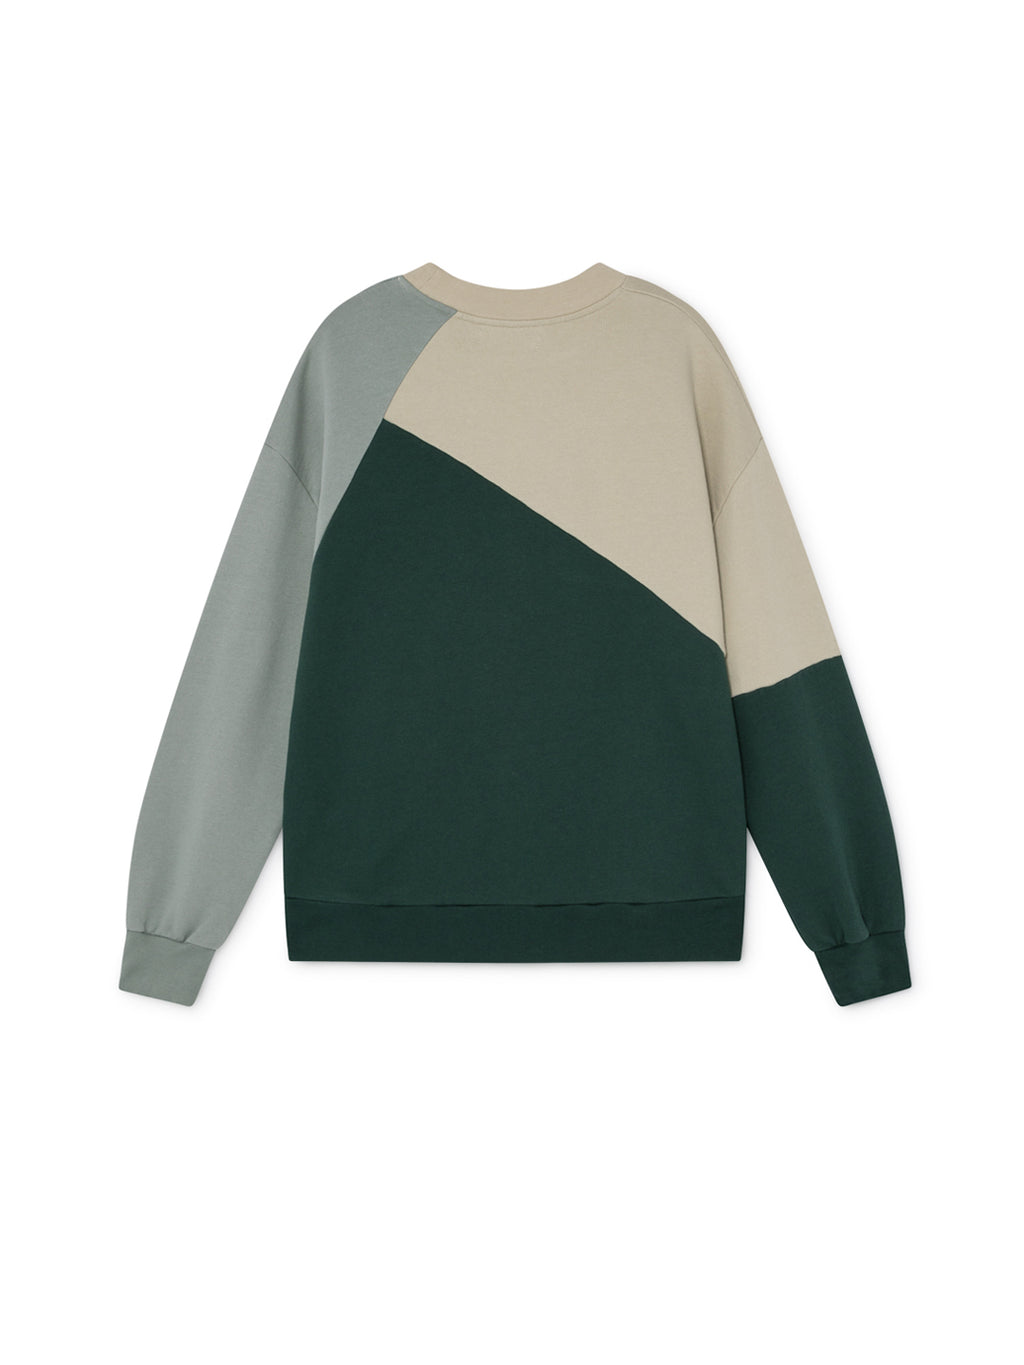 TWOTHIRDS Womens Sweat: Fair - Green back